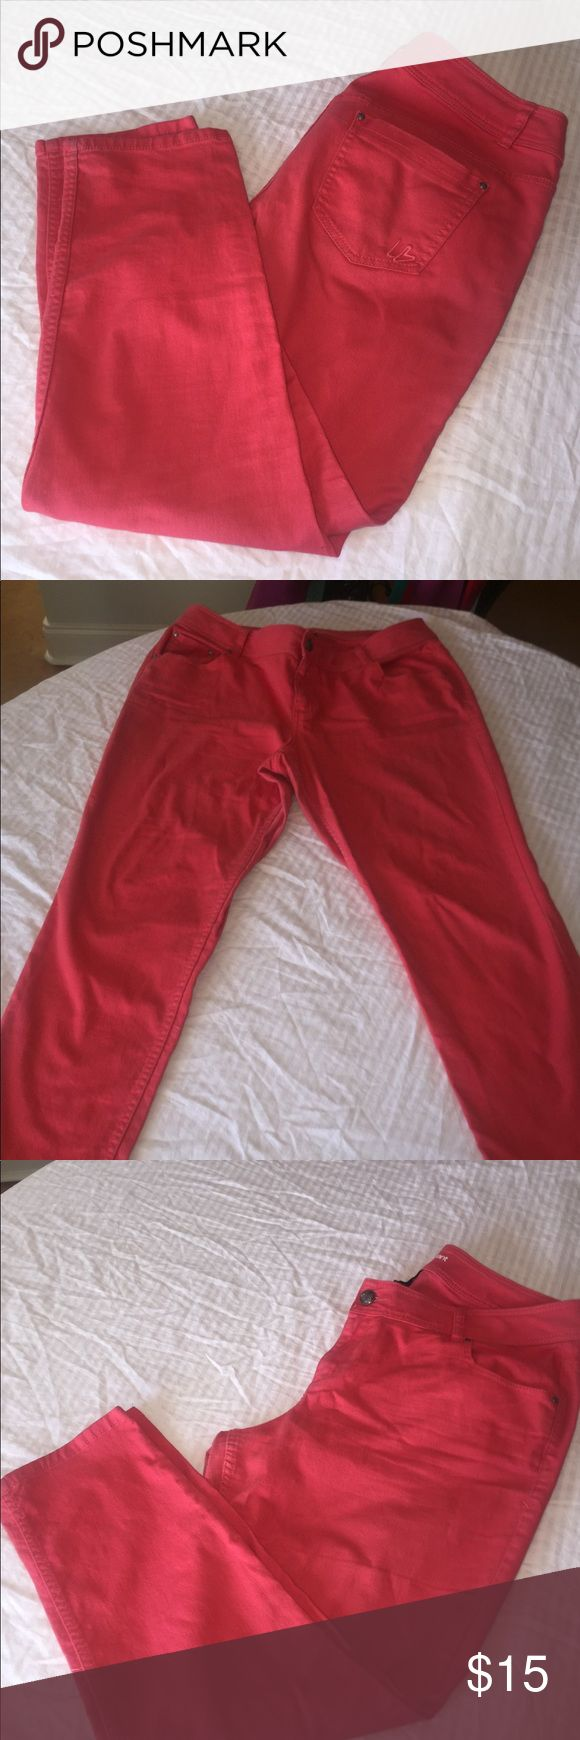 Coral Skinny Jeans Coral Skinnies! These are very comfortable and so on trend! Lane Bryant Jeans Skinny